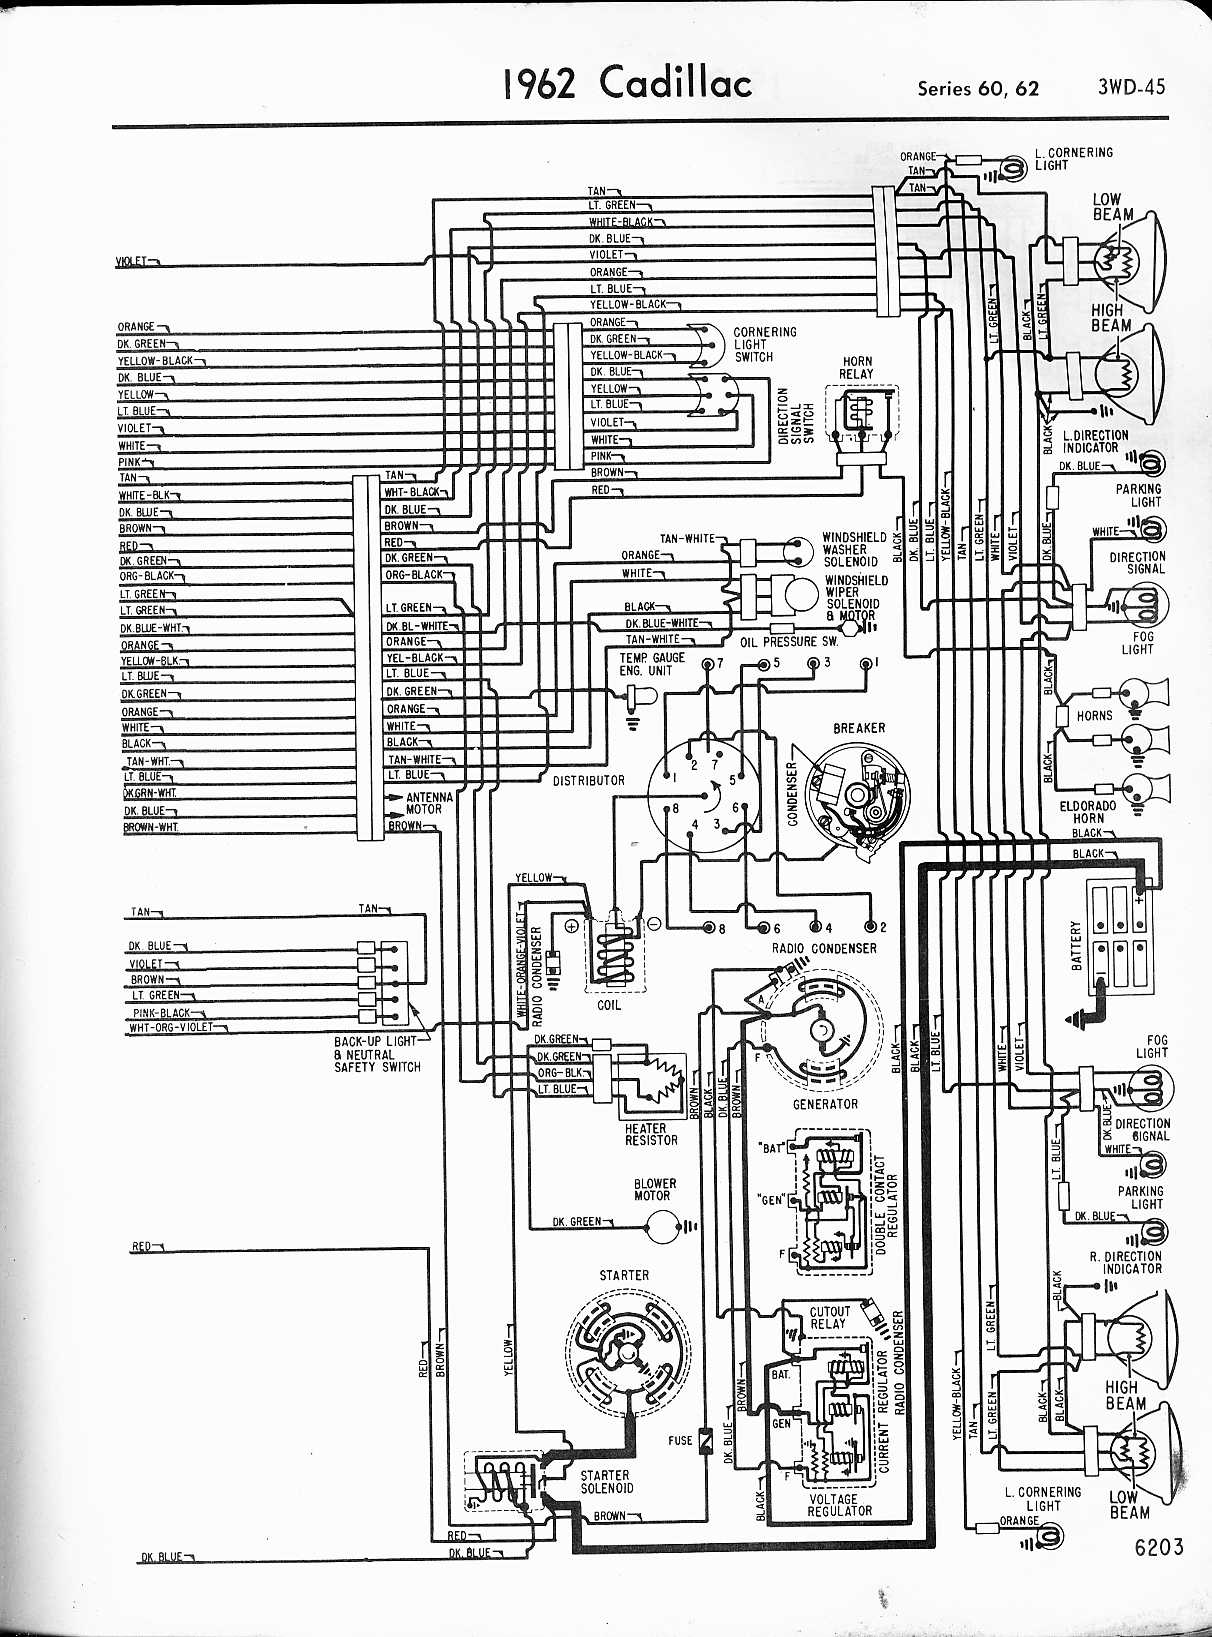 1968 Cadillac Ac Wire Diagram Wiring Will Be A Thing Expedition C Diagrams 1957 1965 Rh Oldcarmanualproject Com Ford Jeep